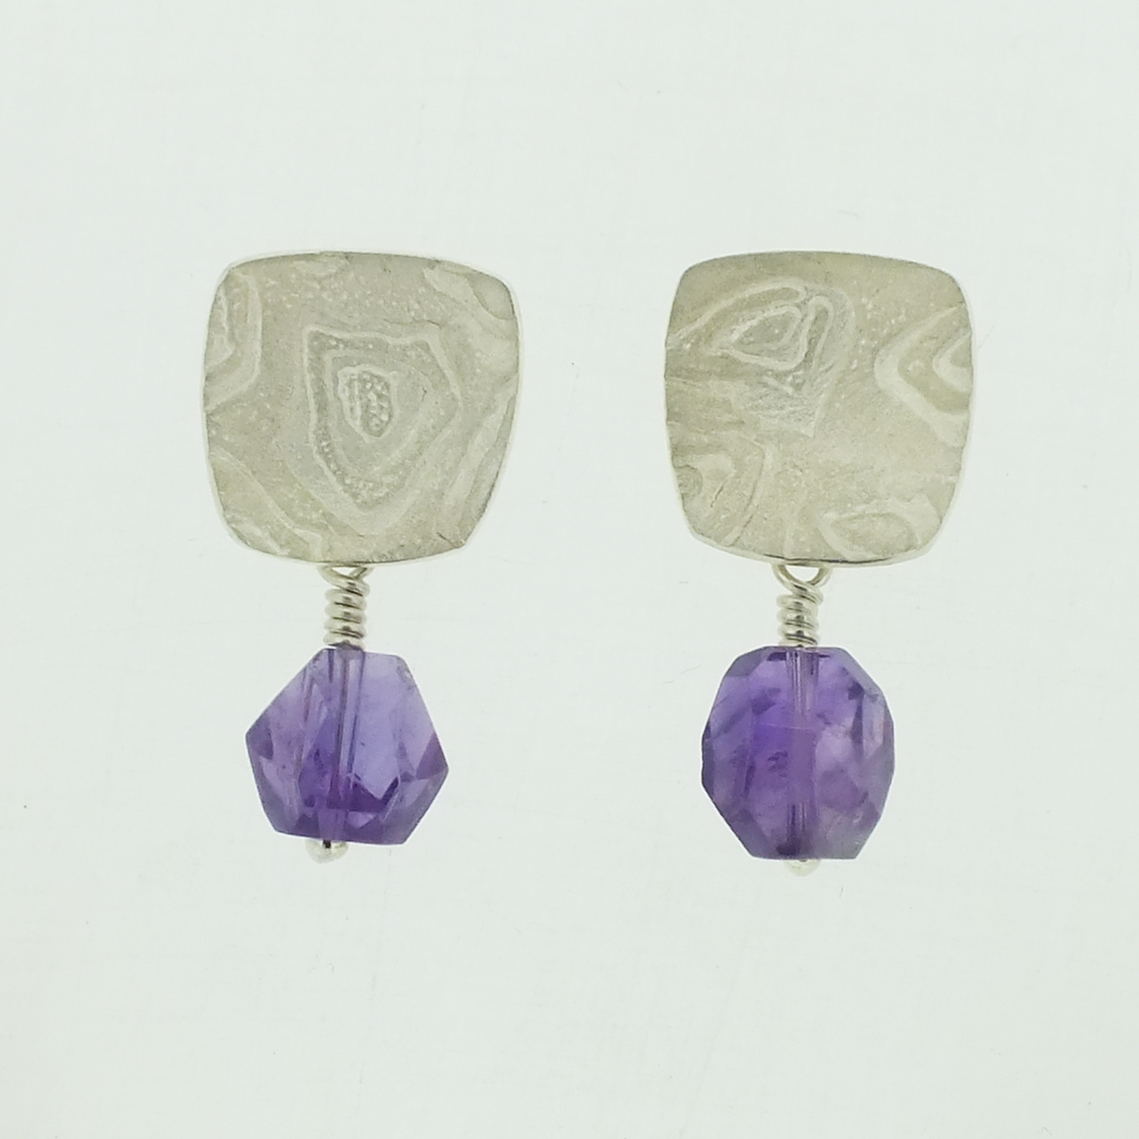 Concave medium 4 neukit textured silver stud earrings with amethyst bead drop